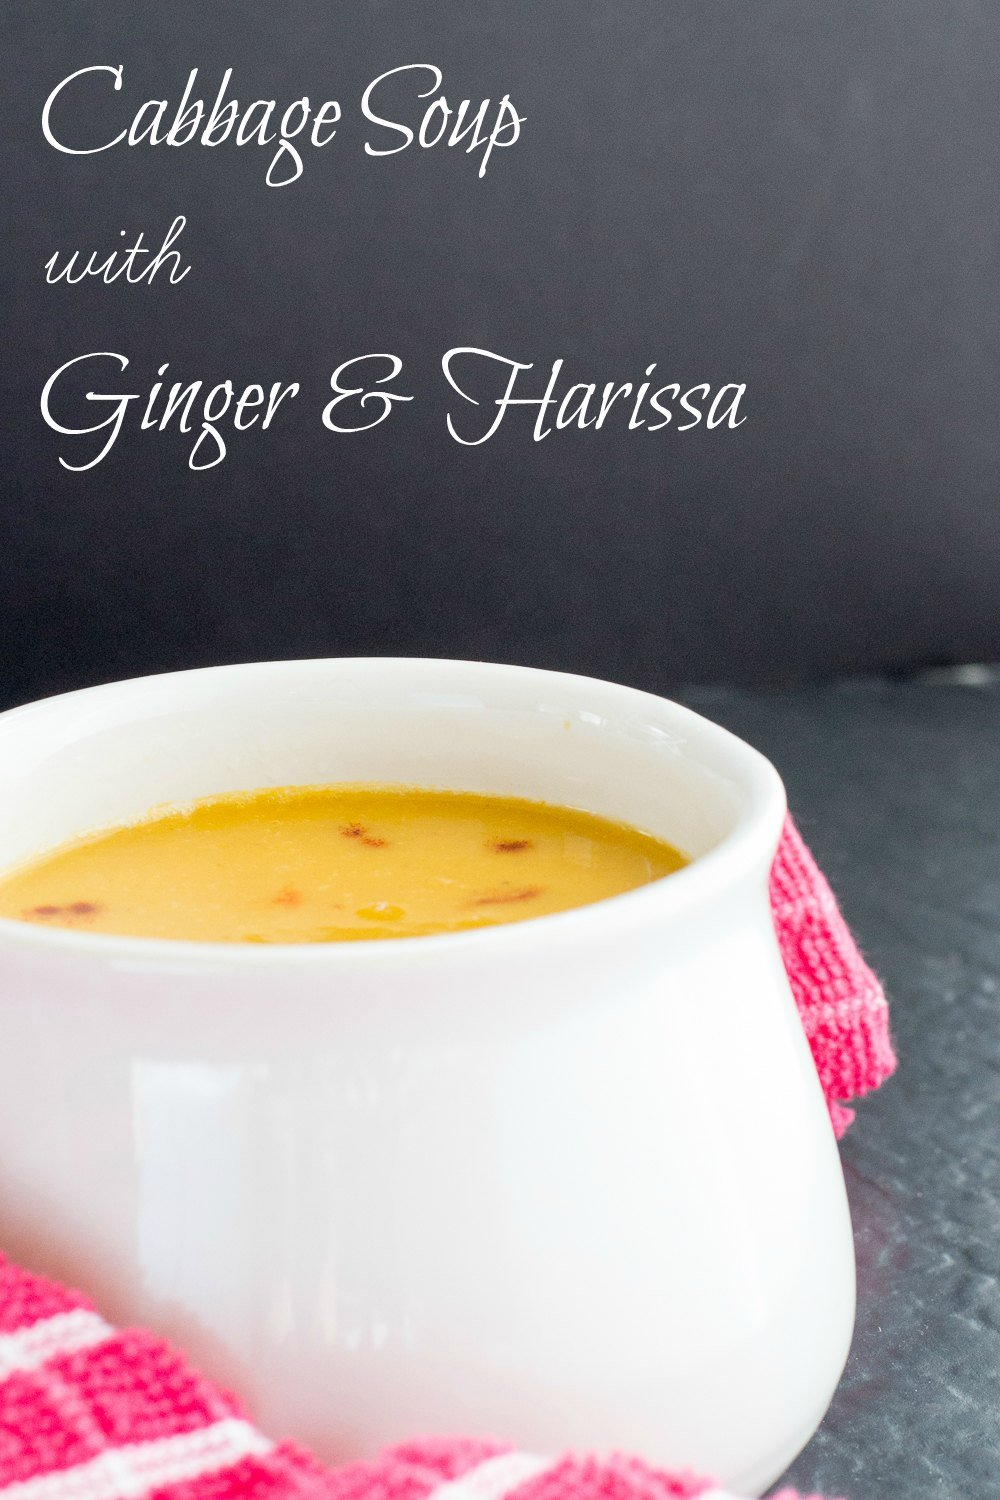 Cabbage soup with harissa and ginger - vegan